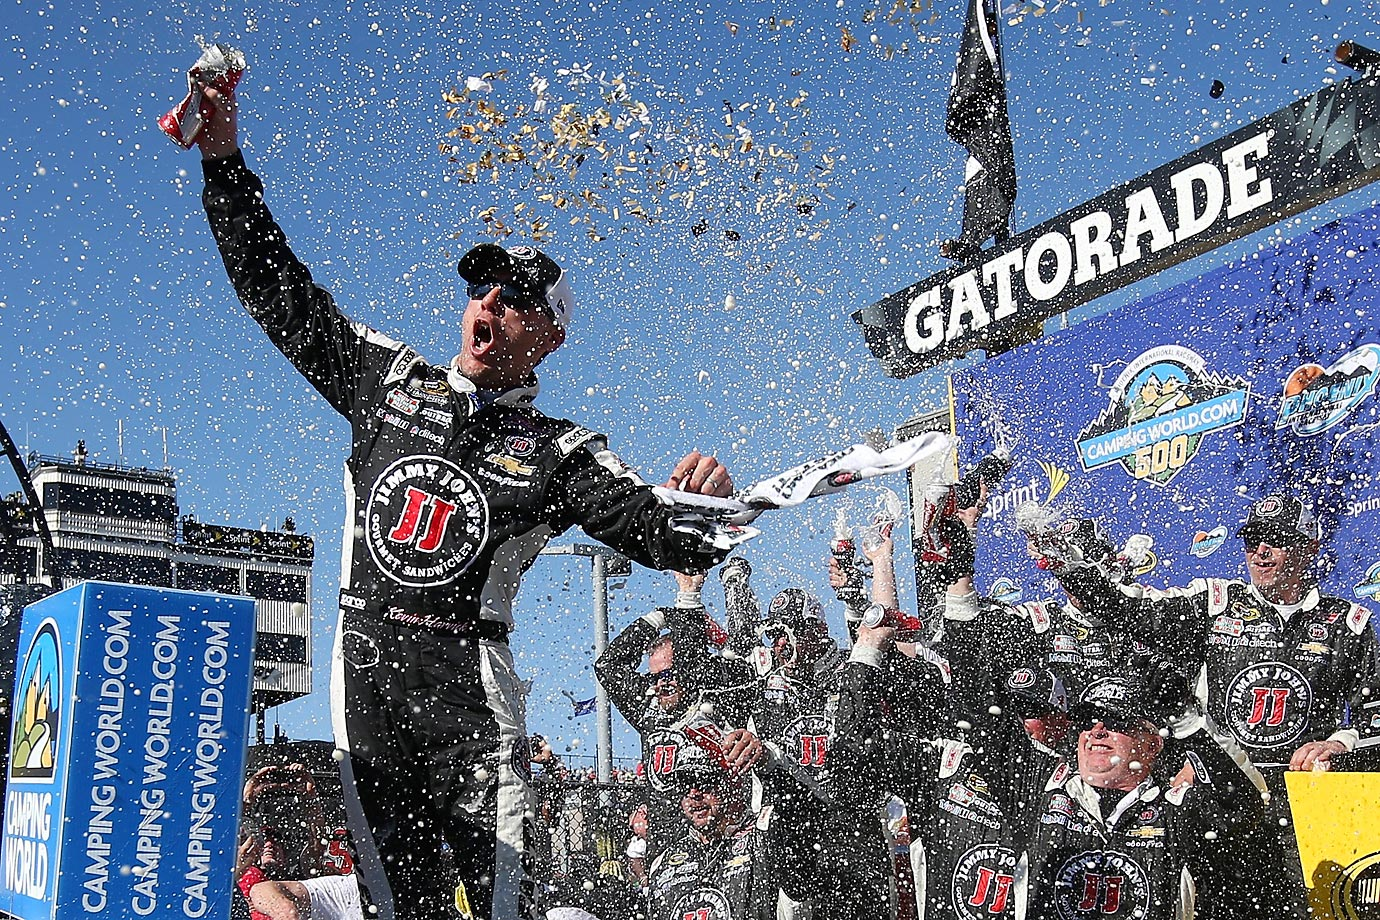 Kevin Harvick celebrates in victory lane after winning the NASCAR Sprint Cup Series CampingWorld.com 500 at Phoenix International Raceway.